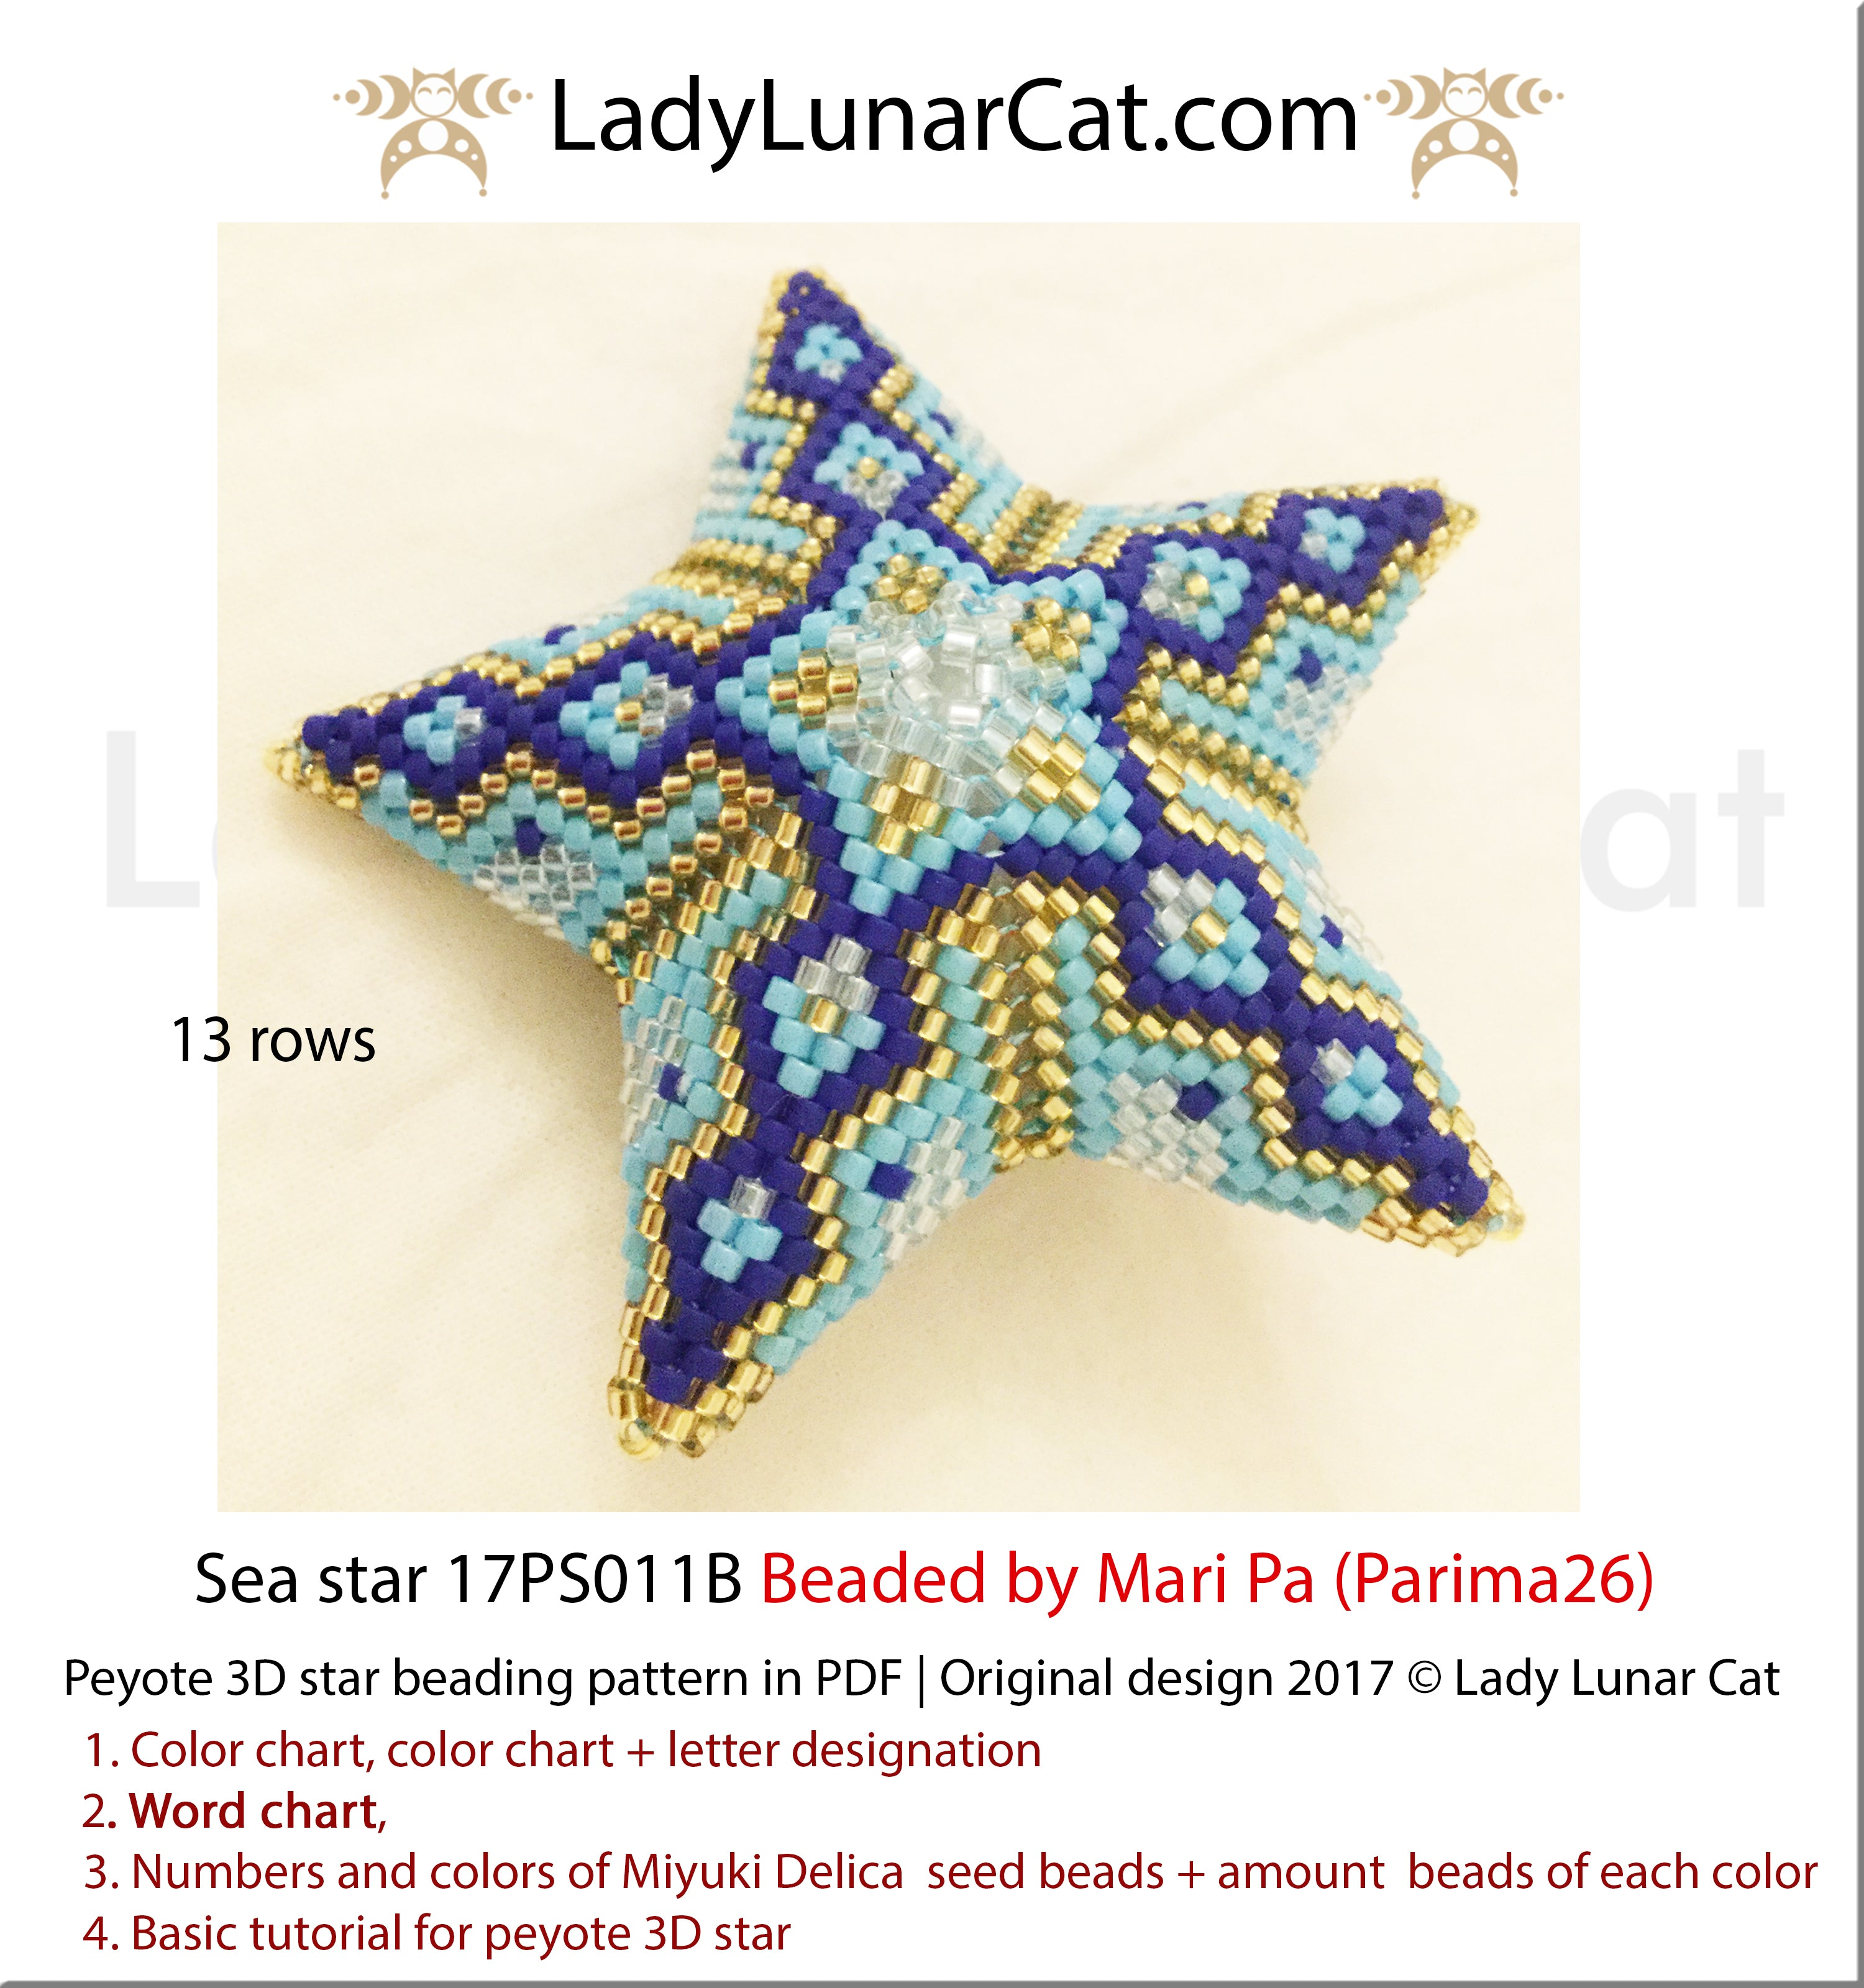 3d peyote star patterns for beading geometric Sea by Lady Lunar Cat | Seed beads tutorial for 3D beaded star